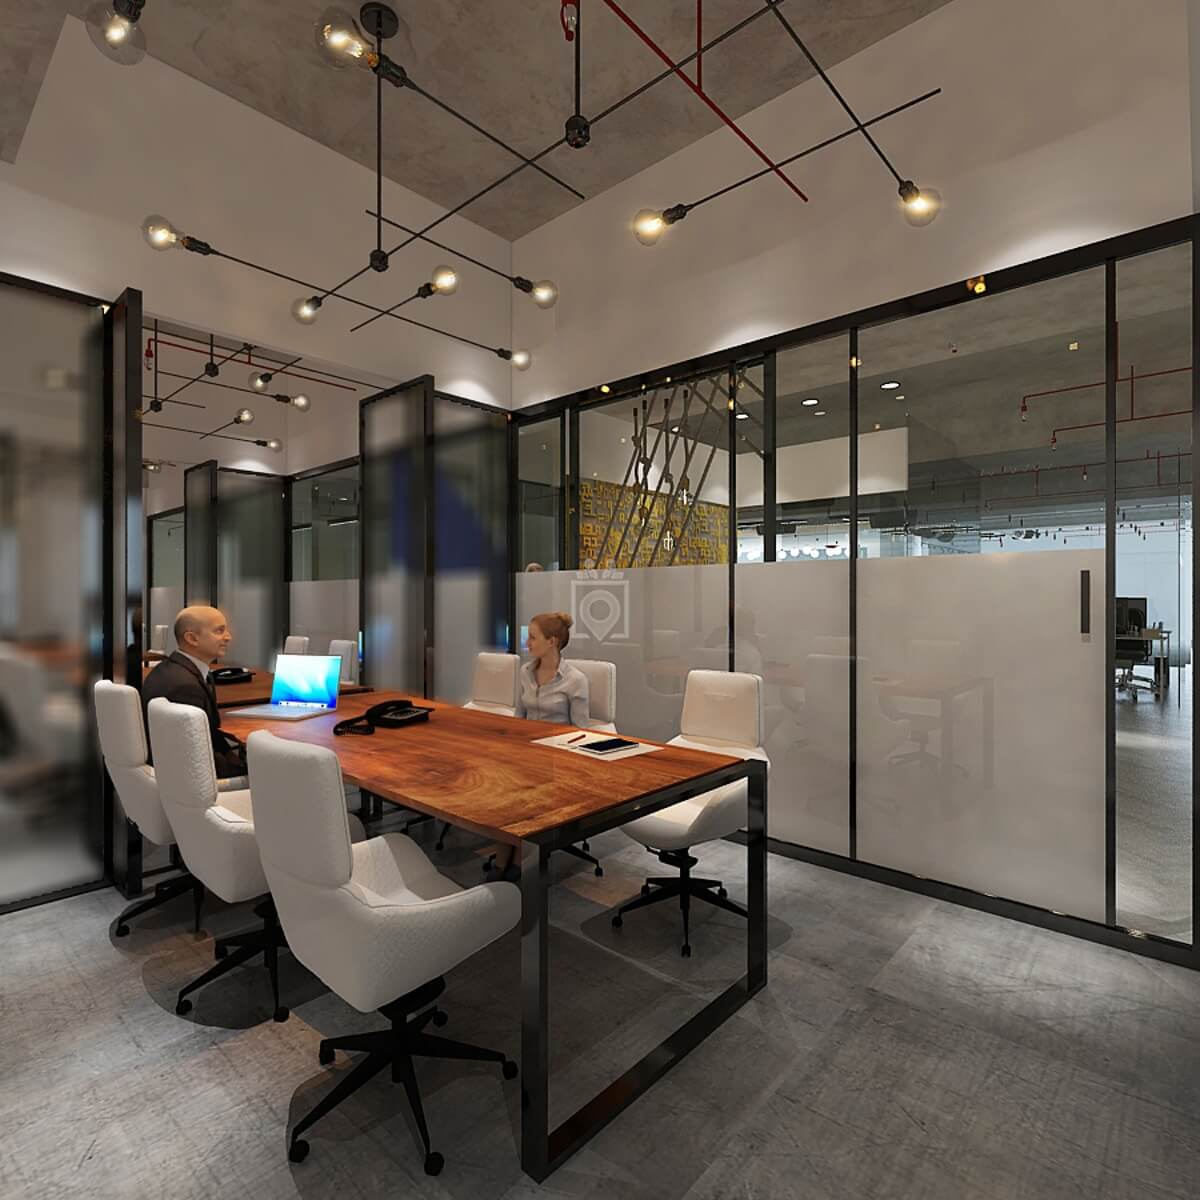 WorkAmp spaces Private Limited